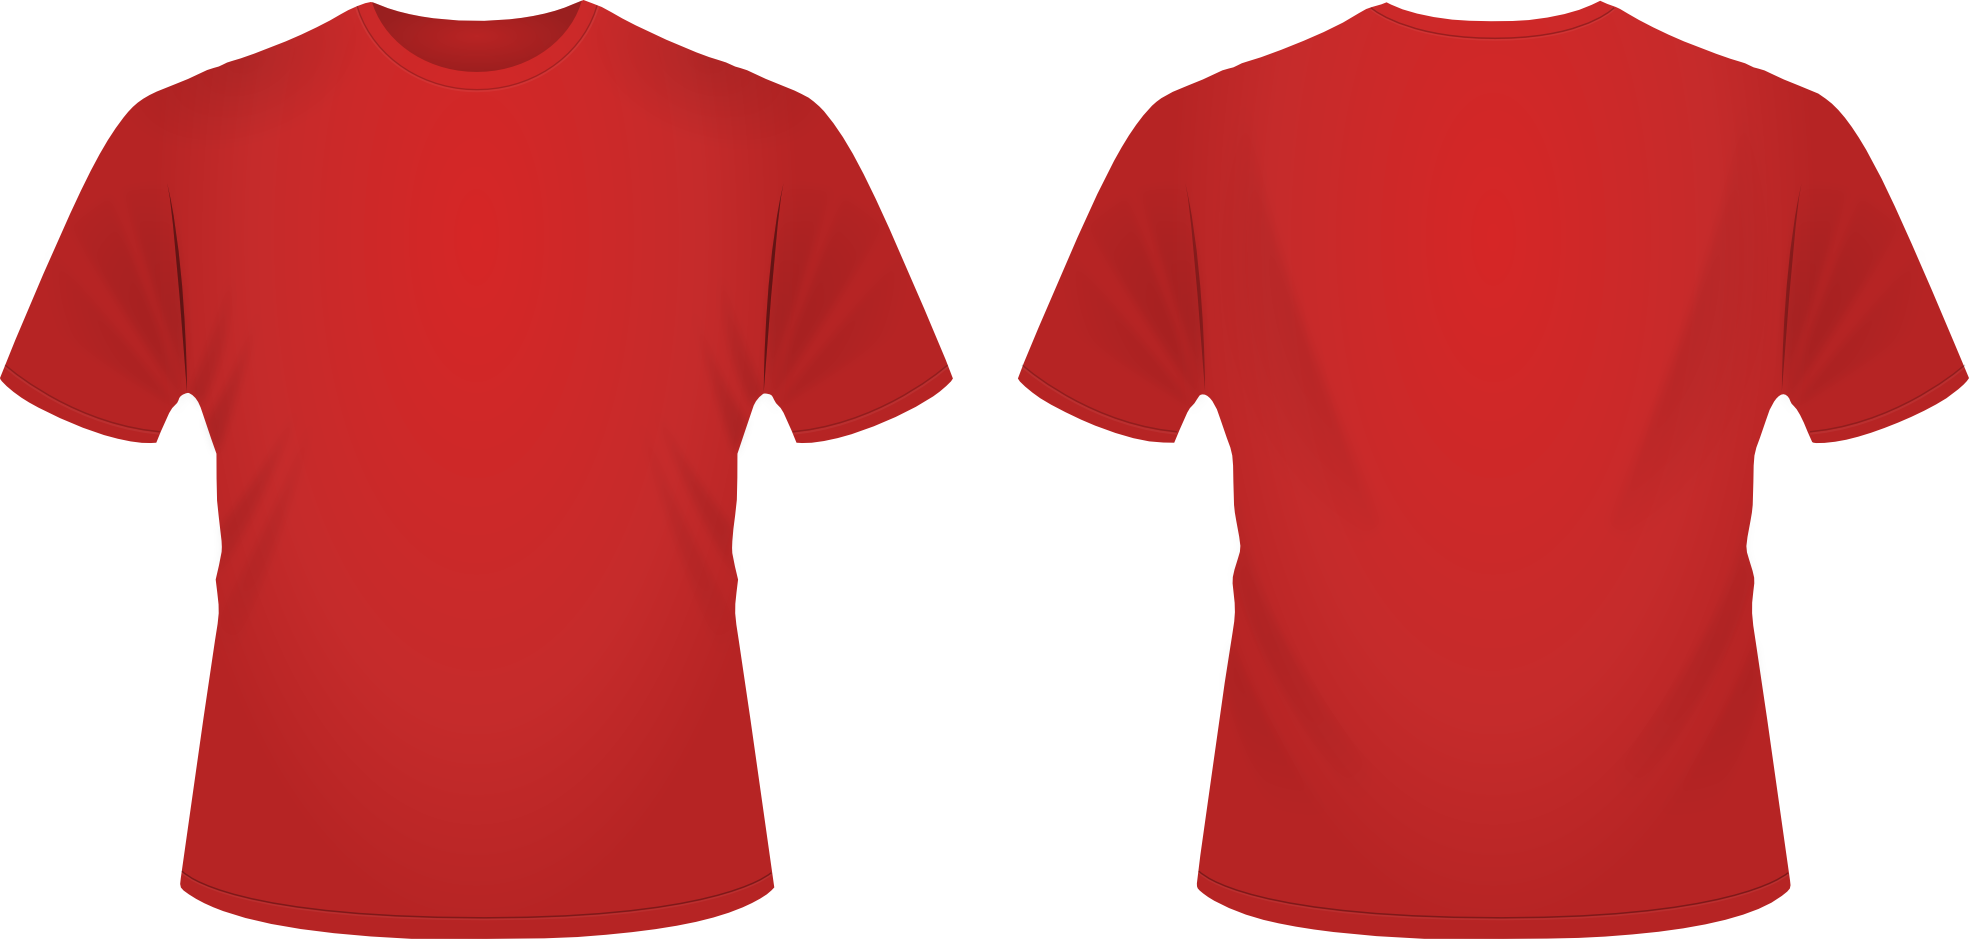 T-shirt Template Red - ClipArt Best